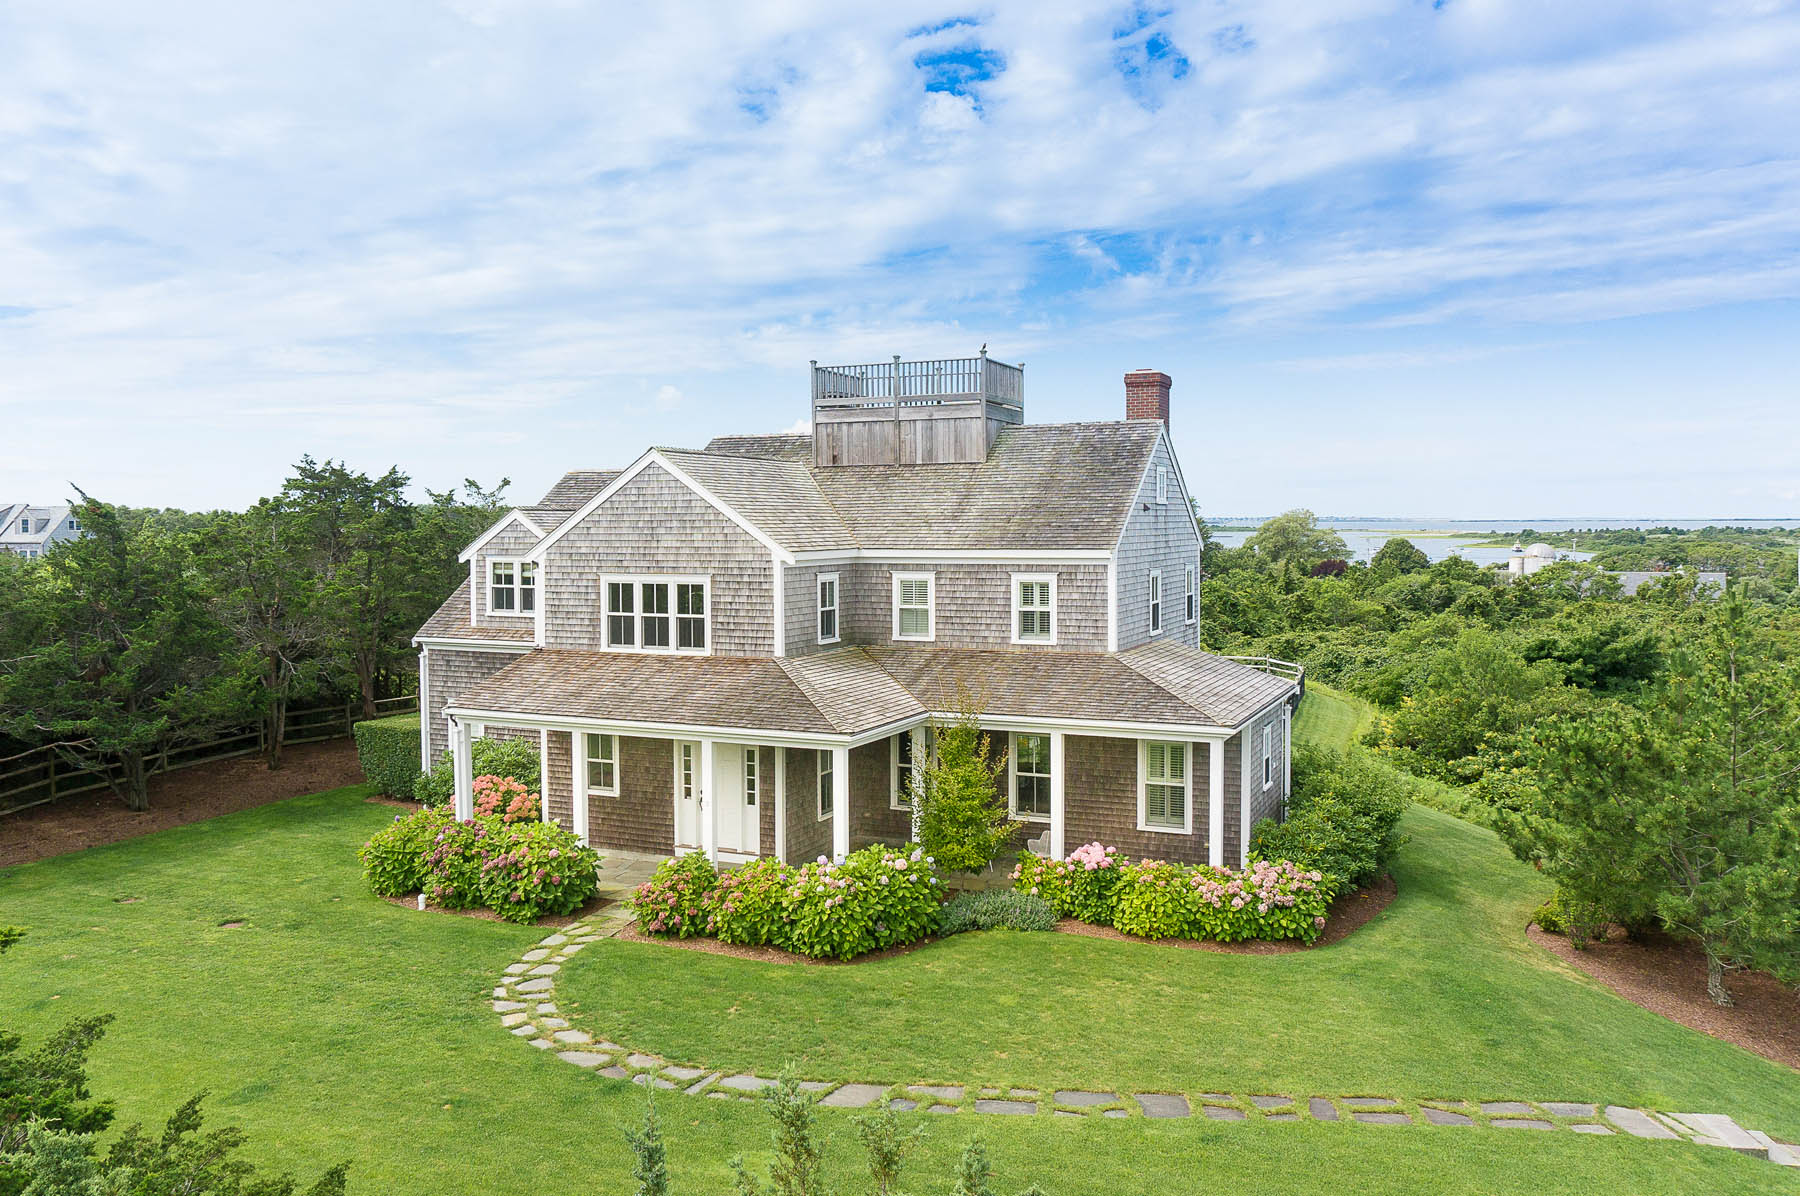 Casa Unifamiliar por un Venta en Expansive Water Views - 6 Bedrooms and 6 Baths 5 Eat Fire Spring Road Nantucket, Massachusetts, 02554 Estados Unidos